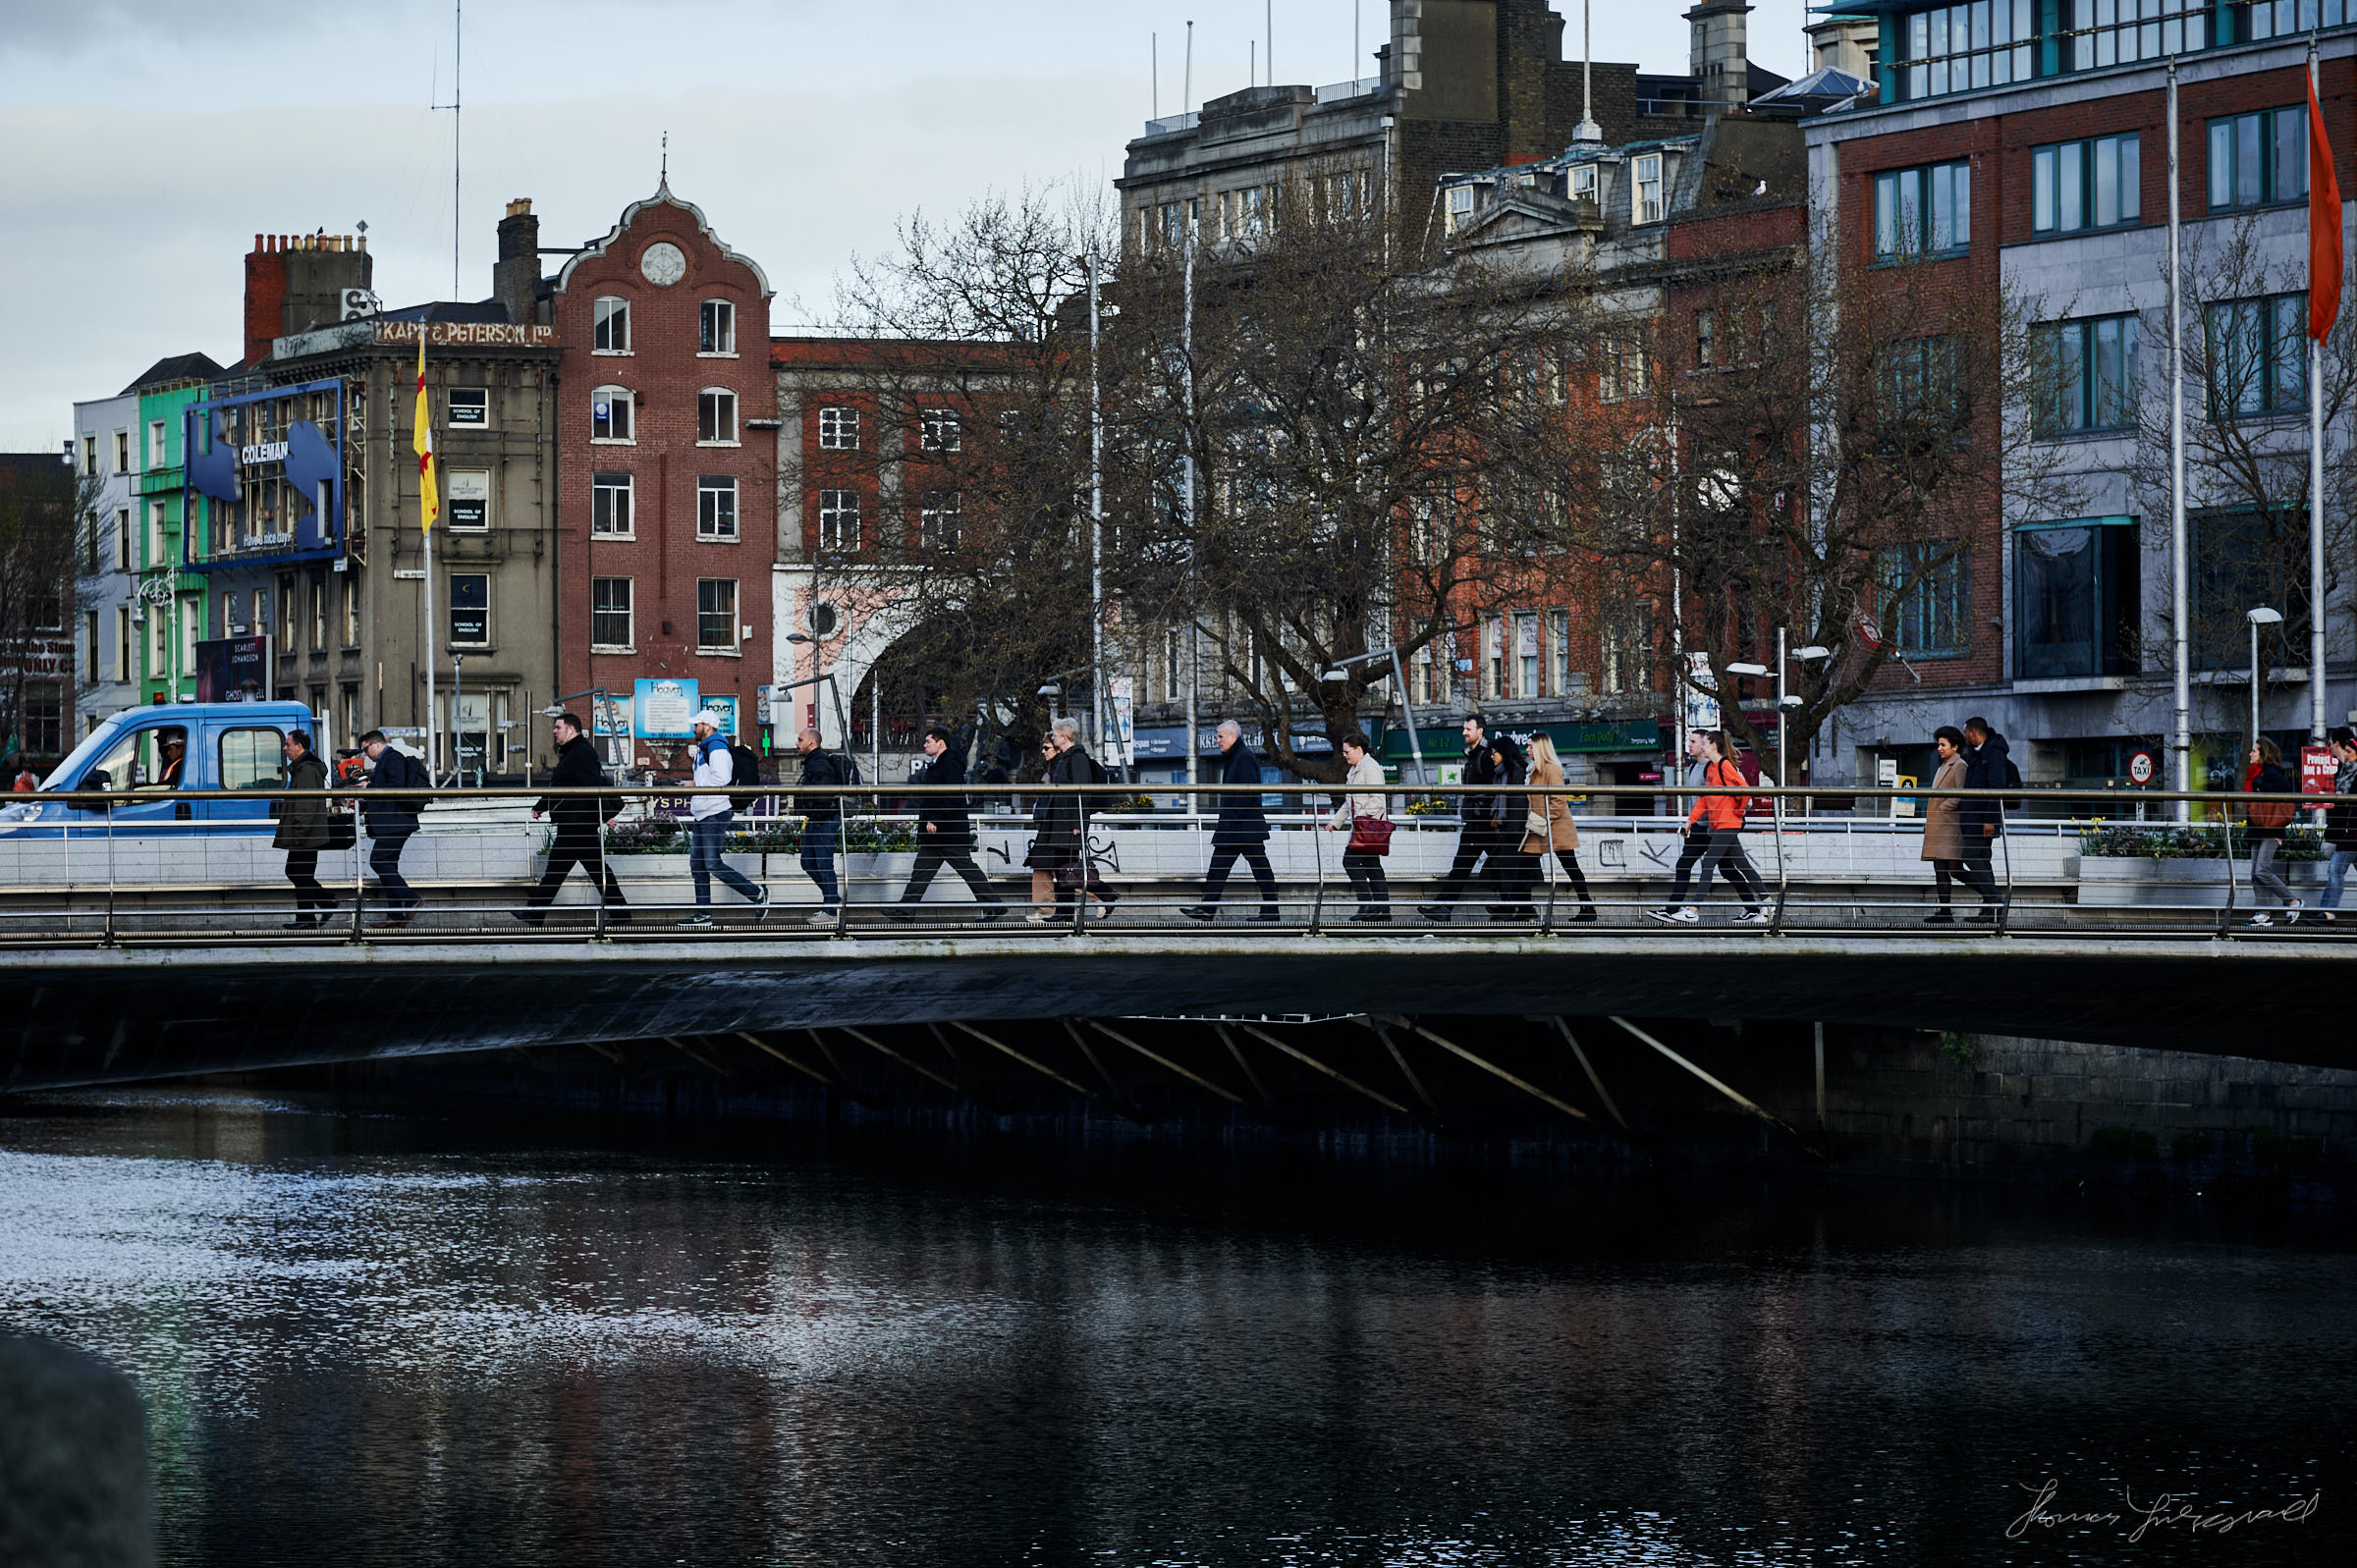 People crossing the Hackett Bridge in the morning on the liffey